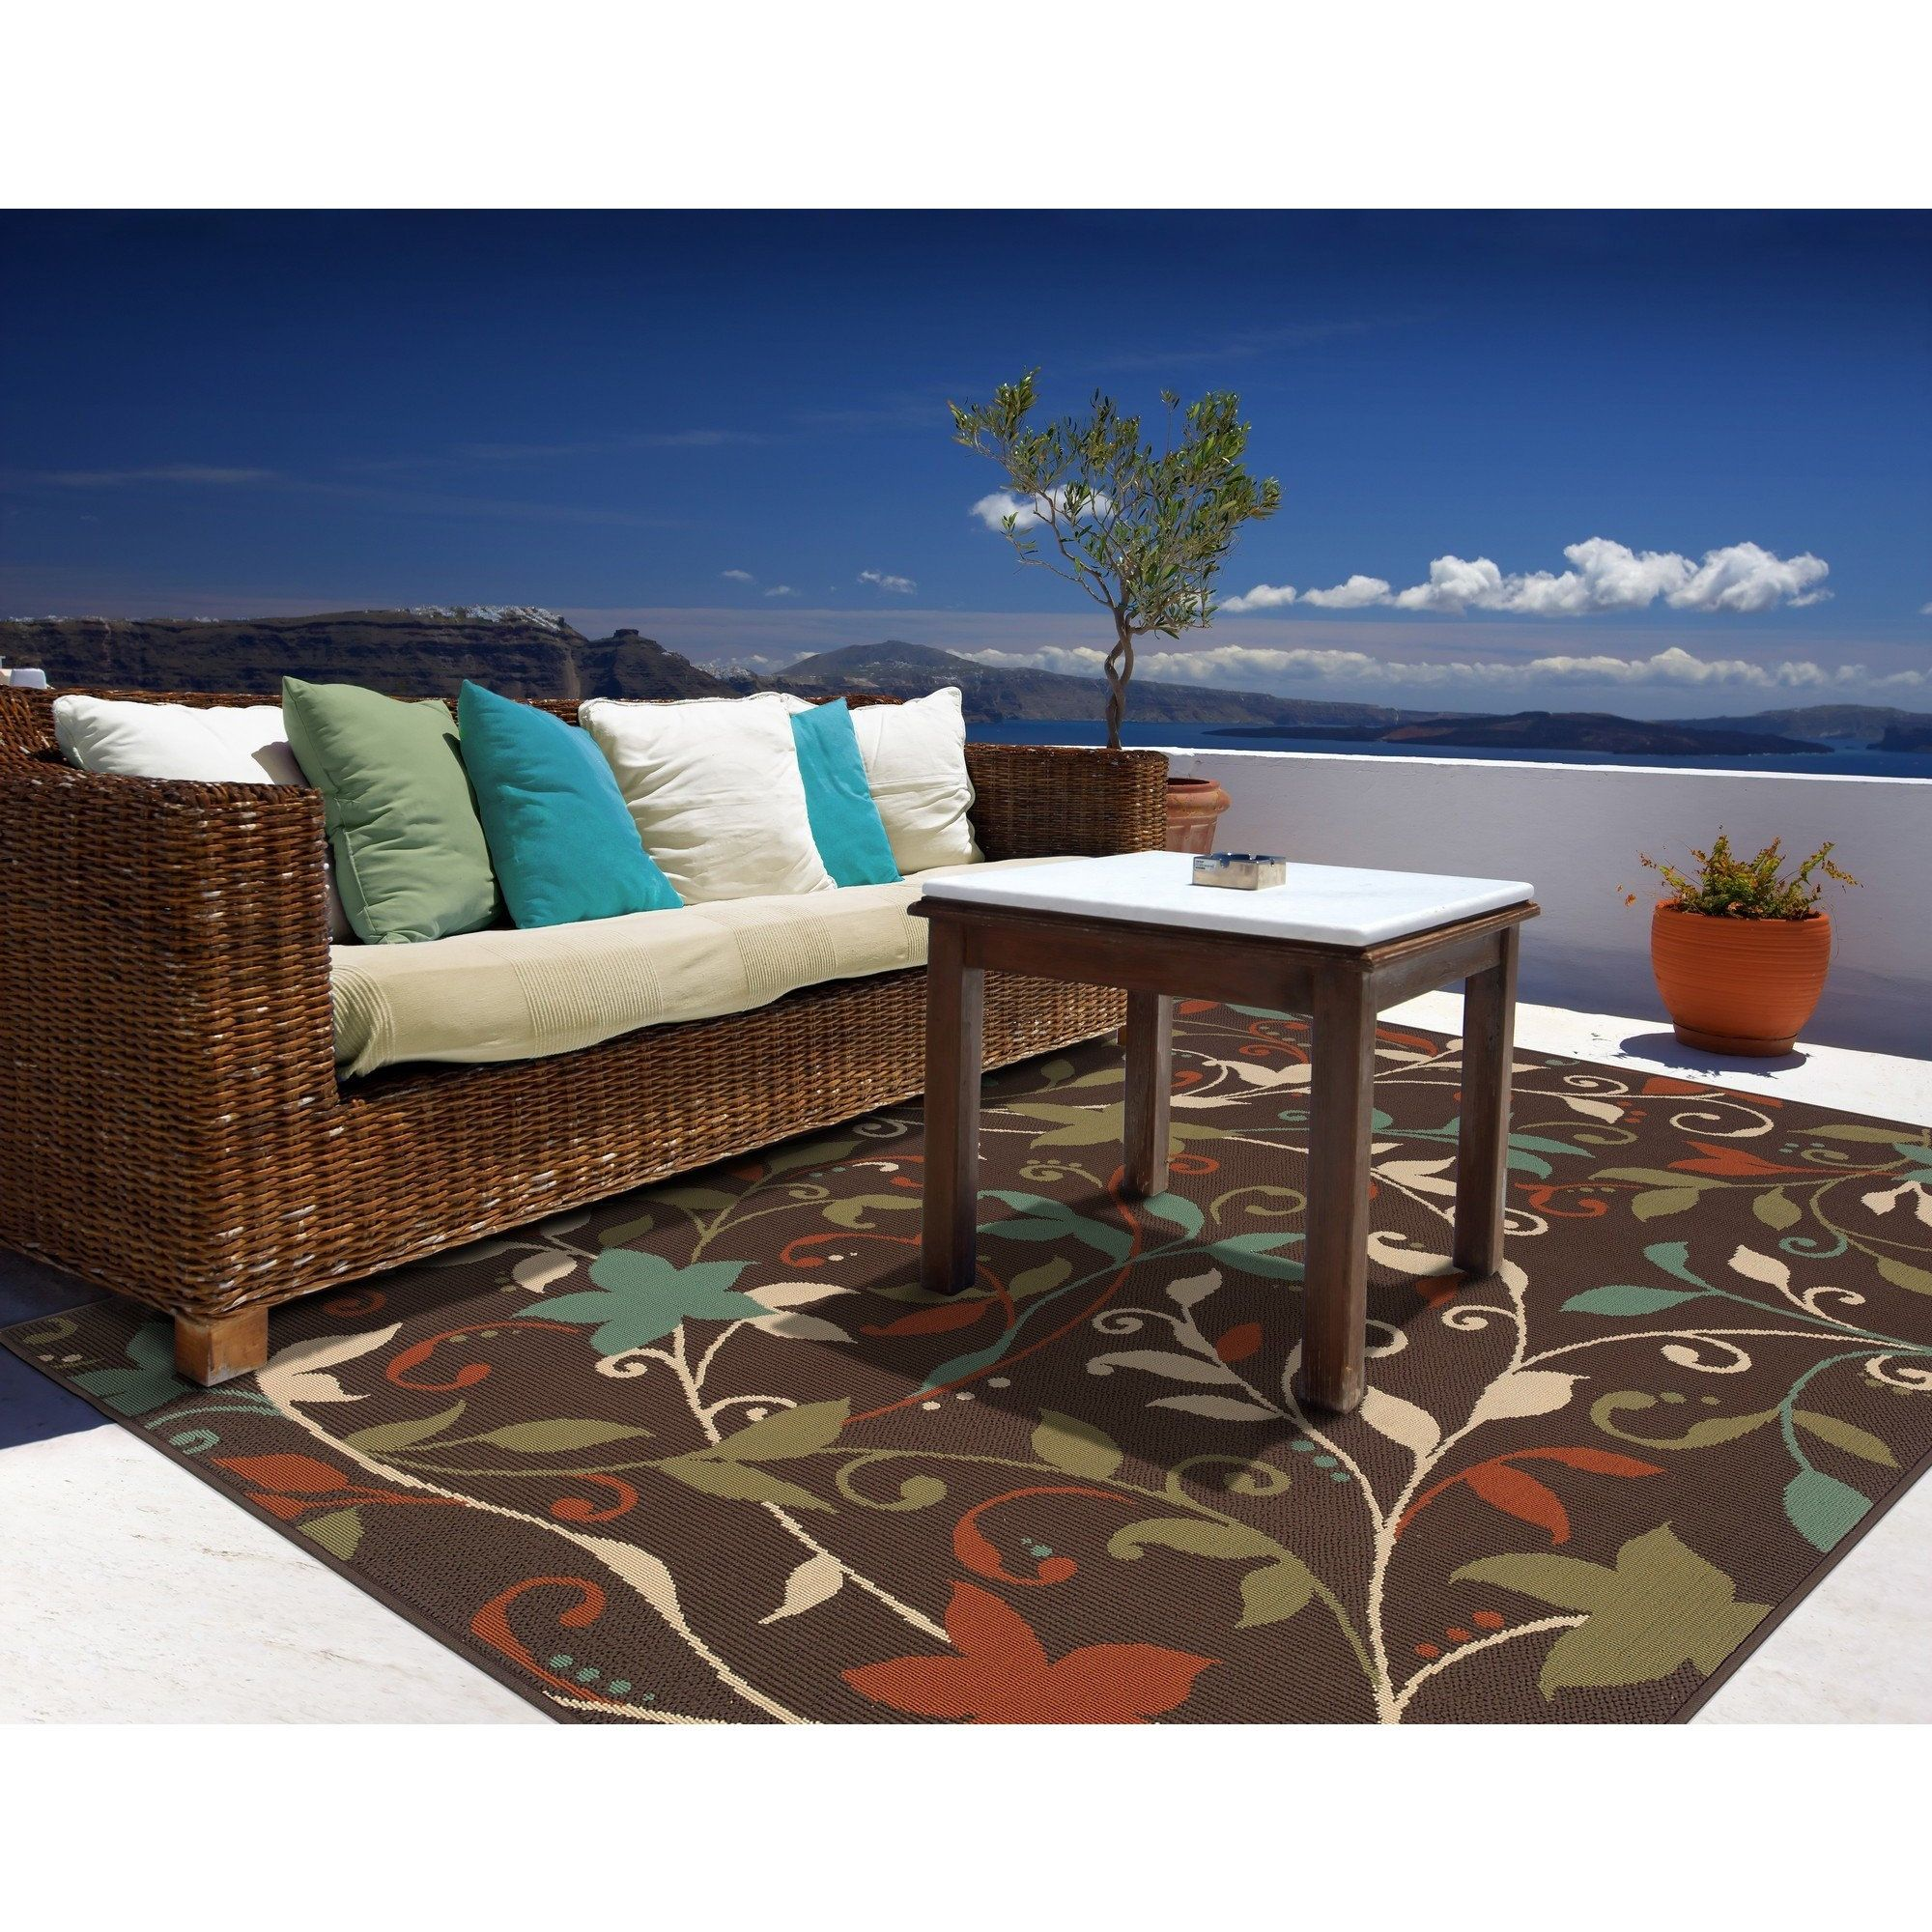 Outdoor Decor: Free Shipping on orders over $45 at Overstock.com - Your Online Outdoor Decor Store! 6 or 12 month special financing available. Get 5% in rewards with Club O!